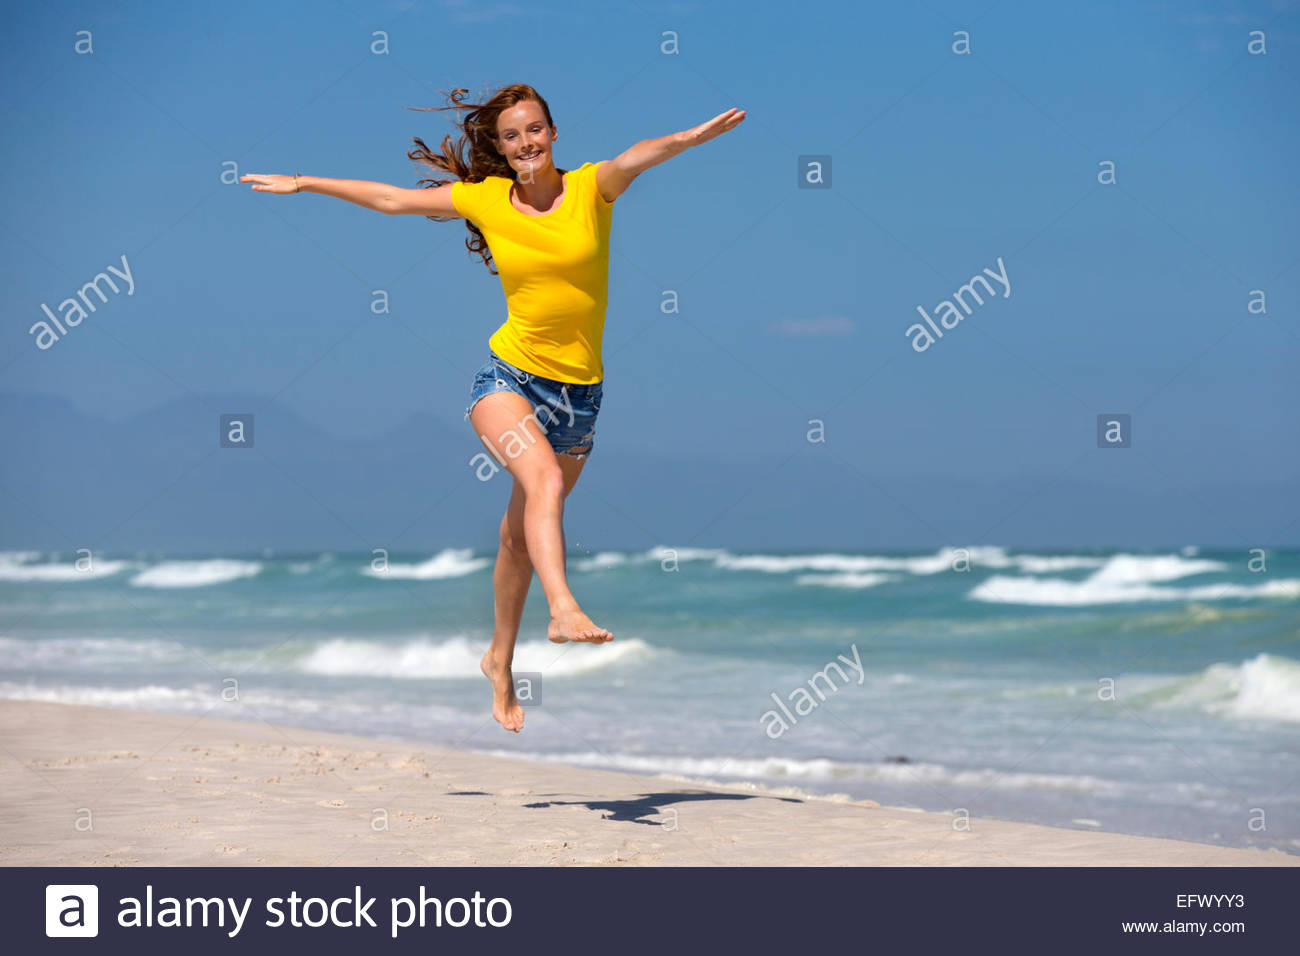 Happy woman, with arms outstretched, leaping in air on sunny beach - Stock Image